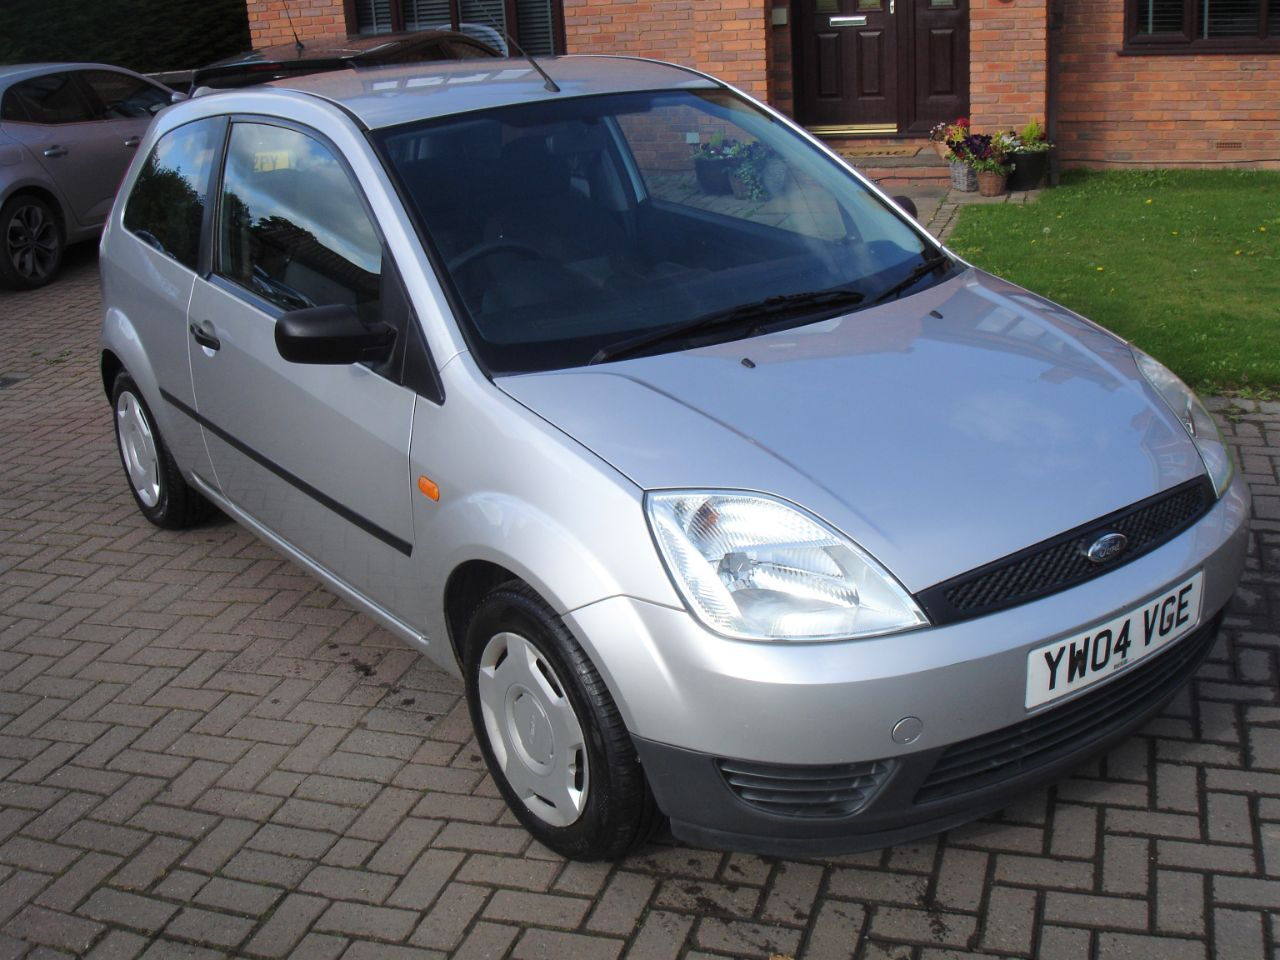 Ford Fiesta 1.25 Finesse 3dr Hatchback Petrol Moondust Silver at Level Pitch Selby